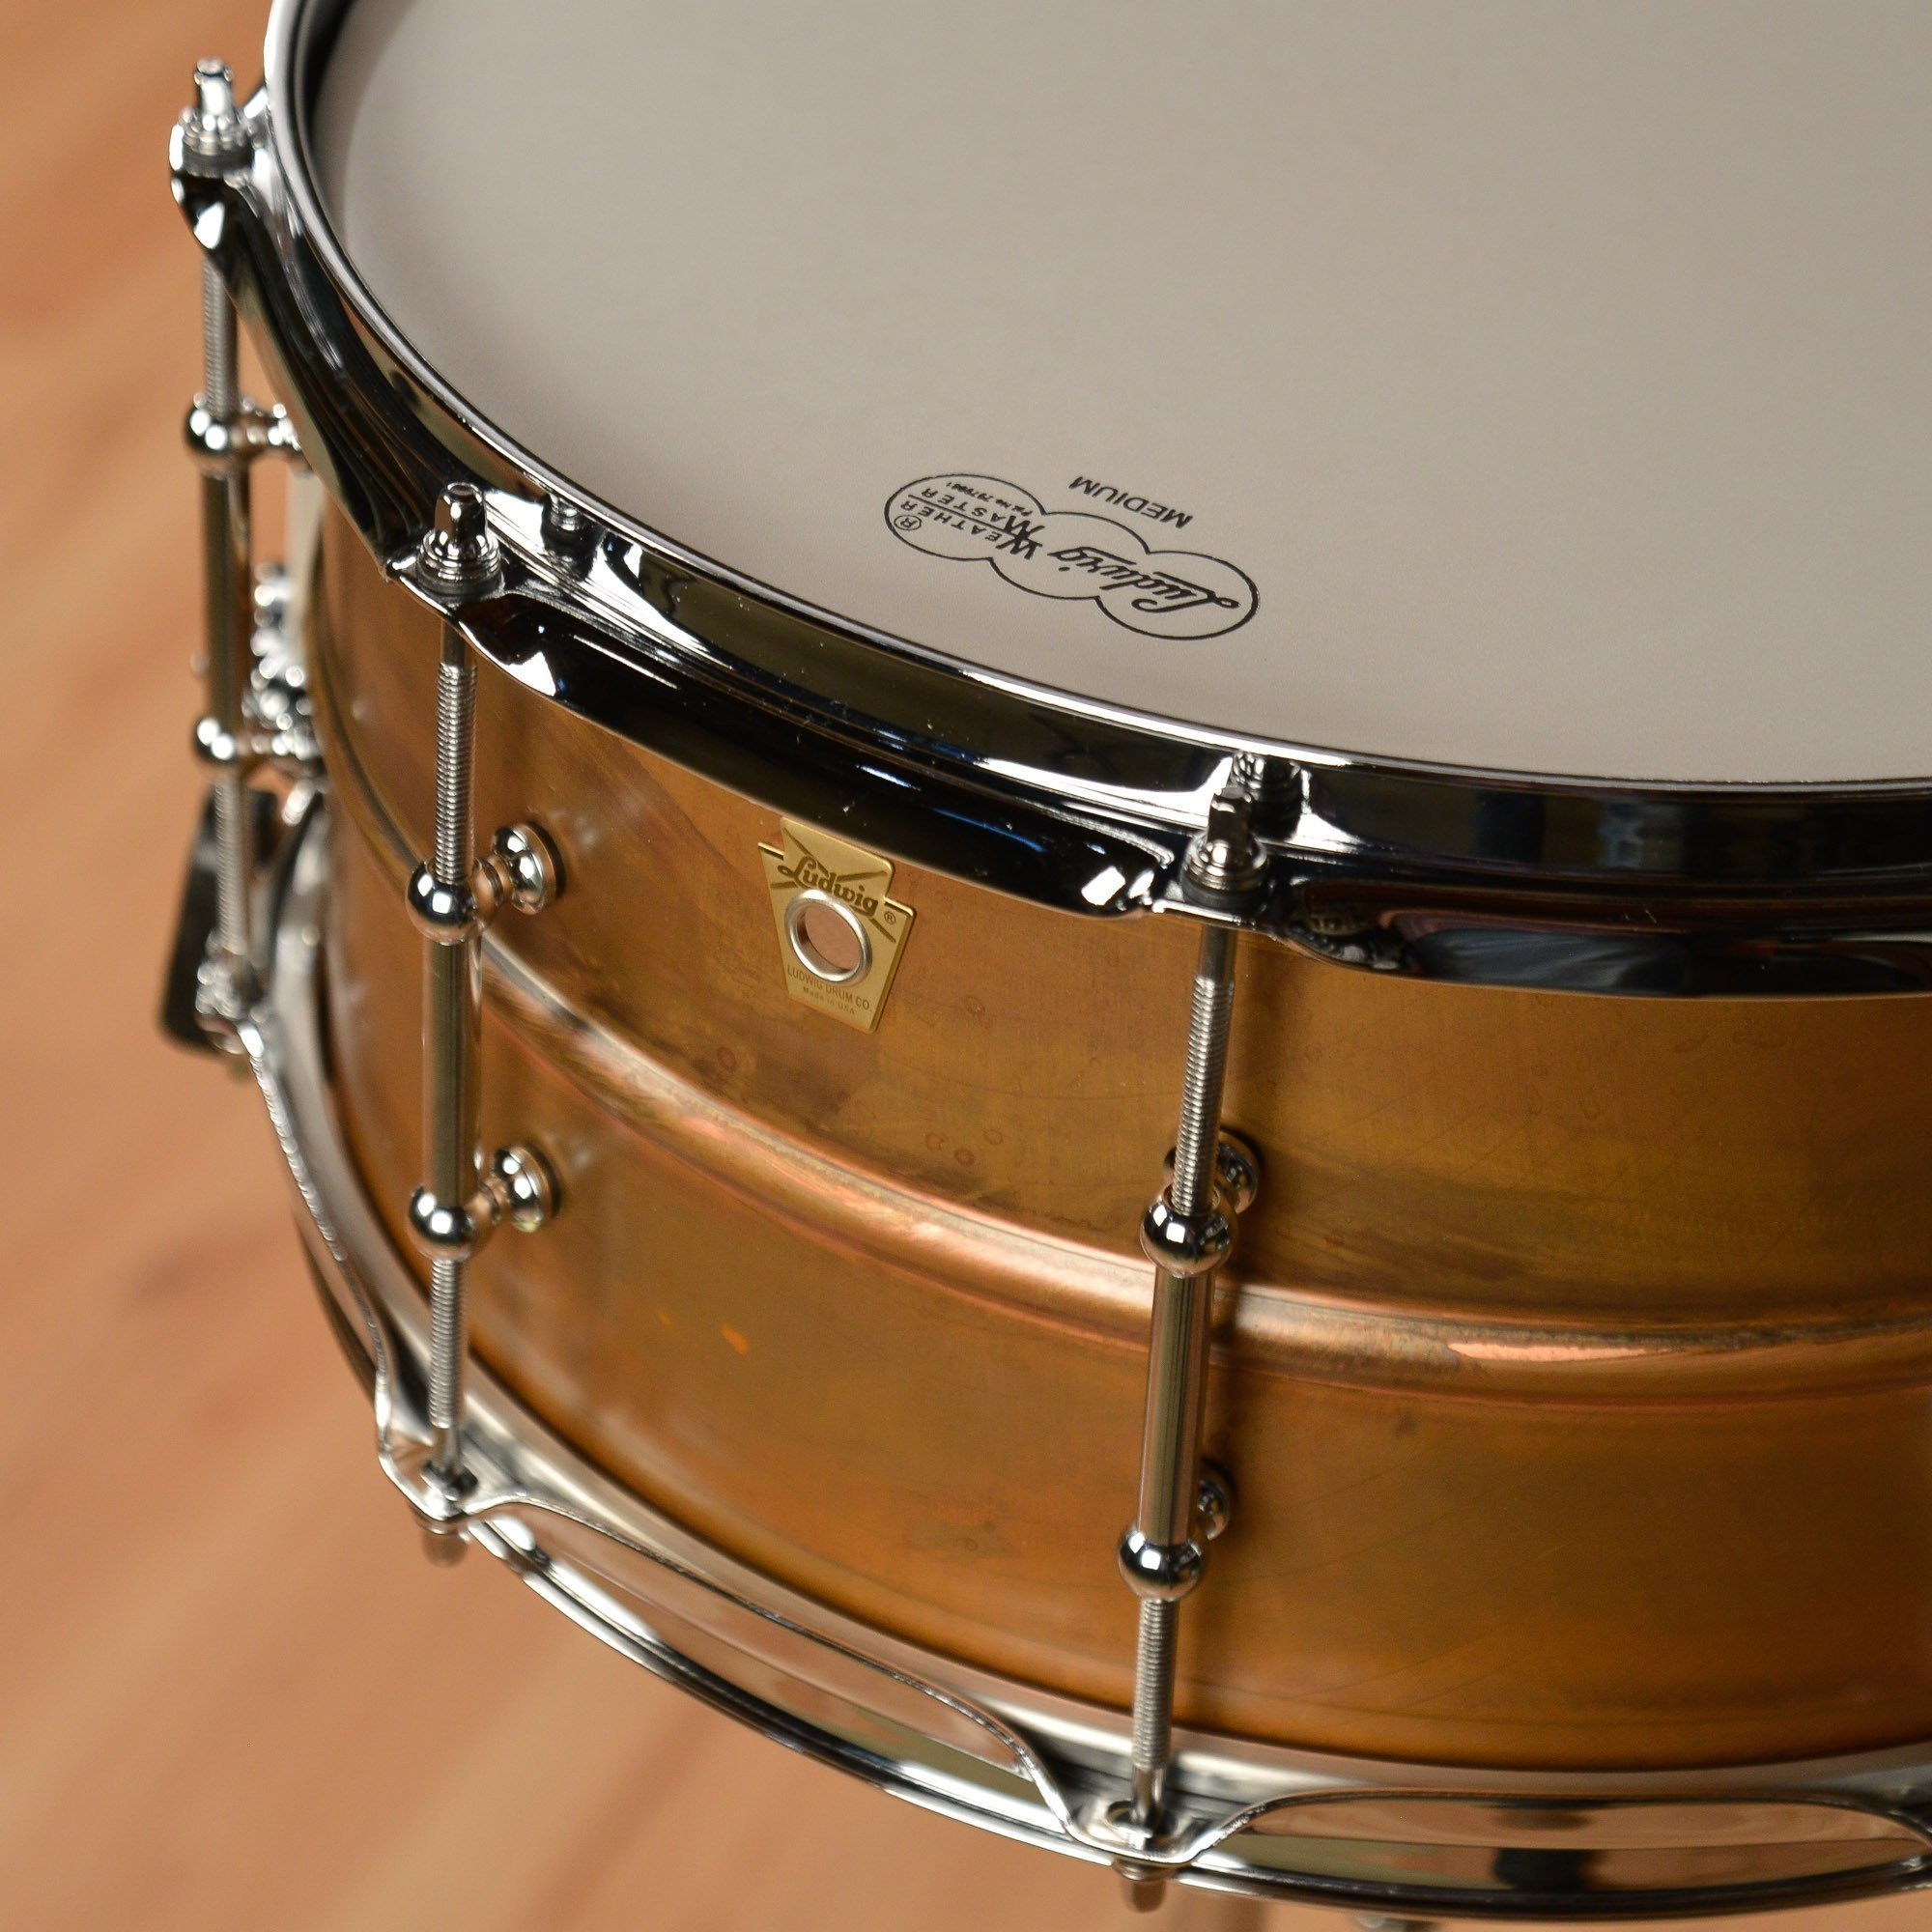 Ludwig Copper Phonic Smooth Snare Drum 14 x 6.5 in. Raw Smooth Finish with Tube Lugs by Ludwig (Image #2)